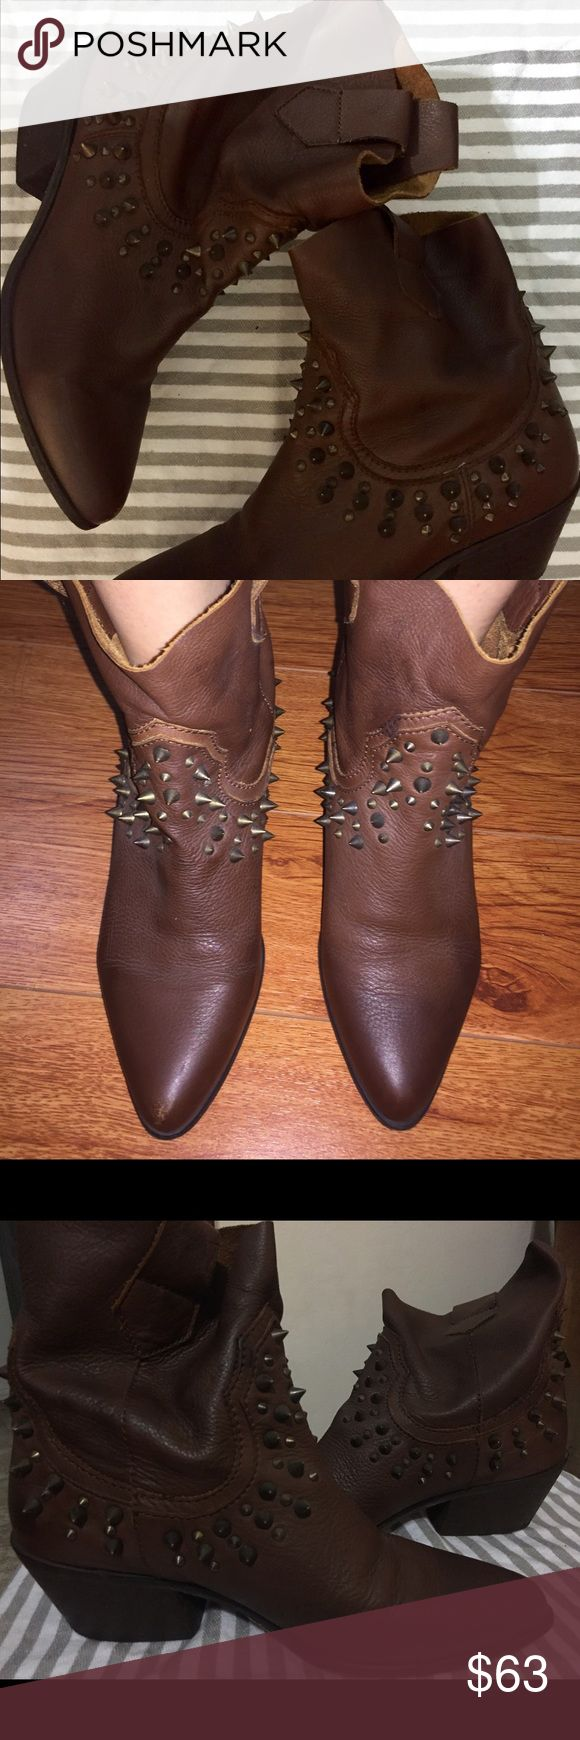 Western Leather Ankle Boots Cute Zara brown leather western boots with studs. Super comfortable, lightly worn, and in need of a new home 🏡 Zara Shoes Ankle Boots & Booties